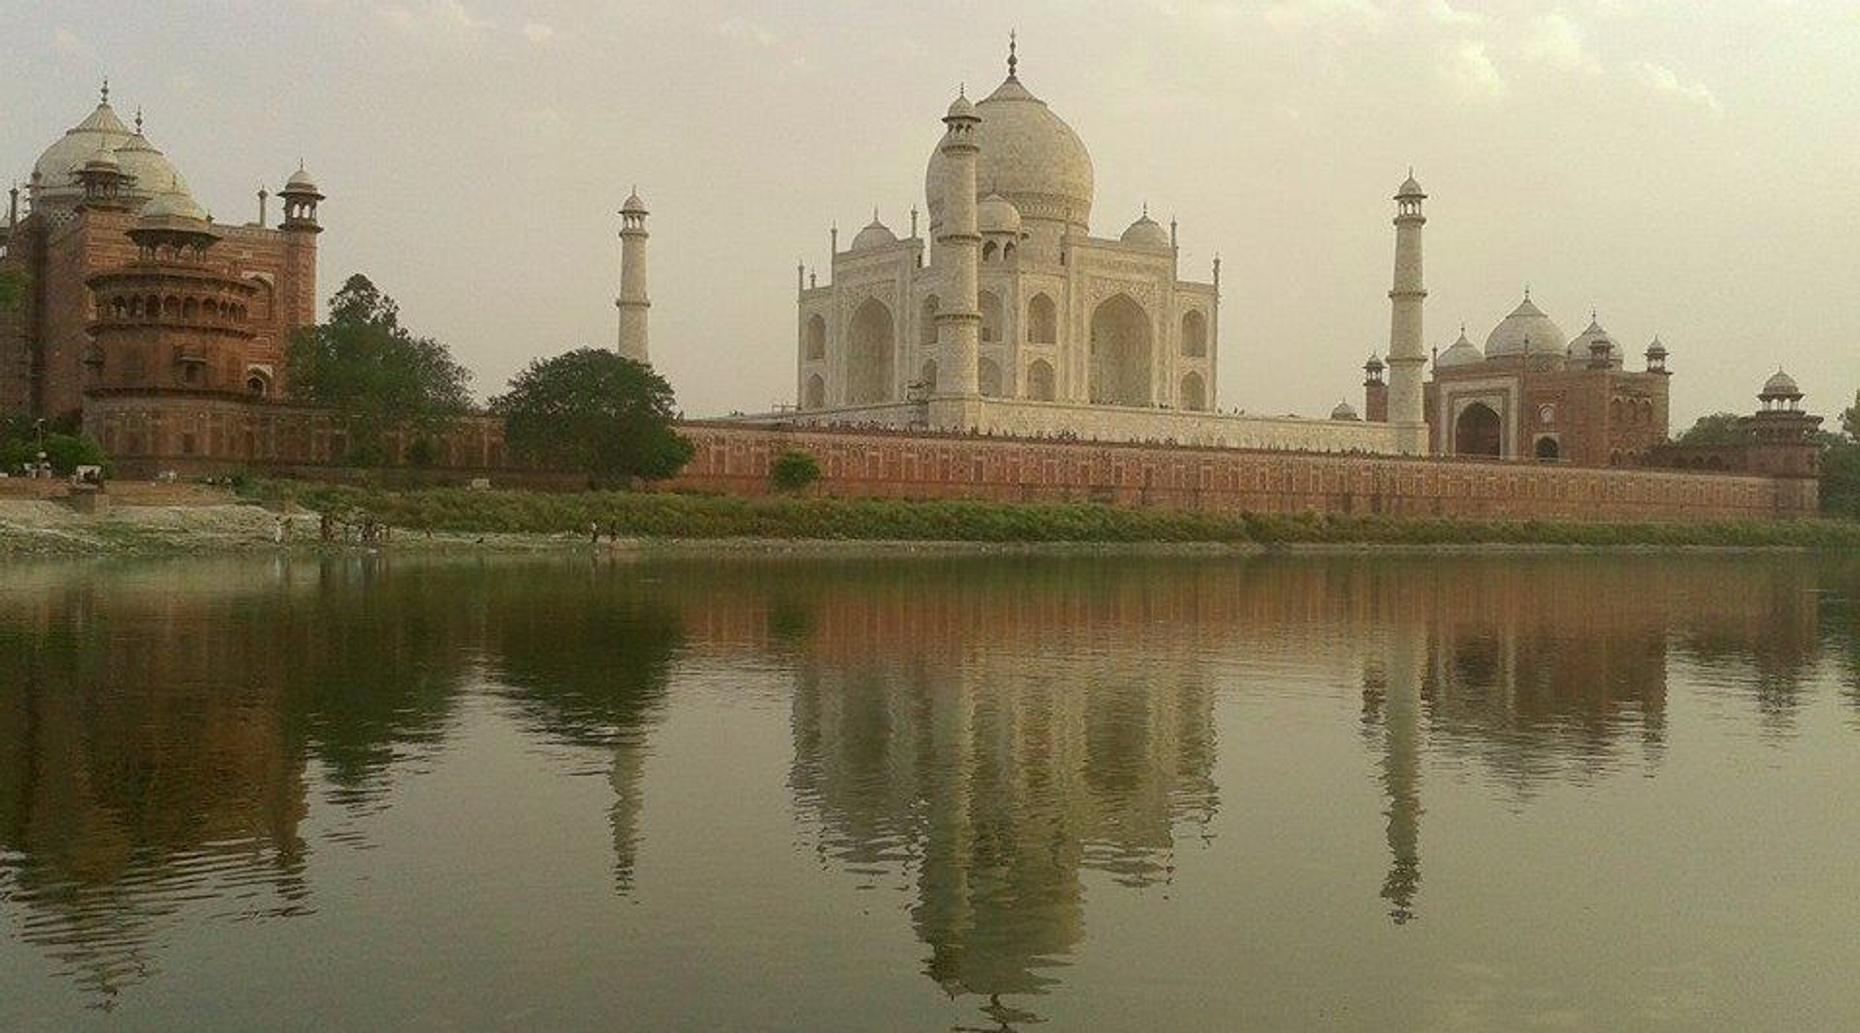 Sunrise to Sunset Guided Taj Mahal Tour from Delhi with Boat Ride